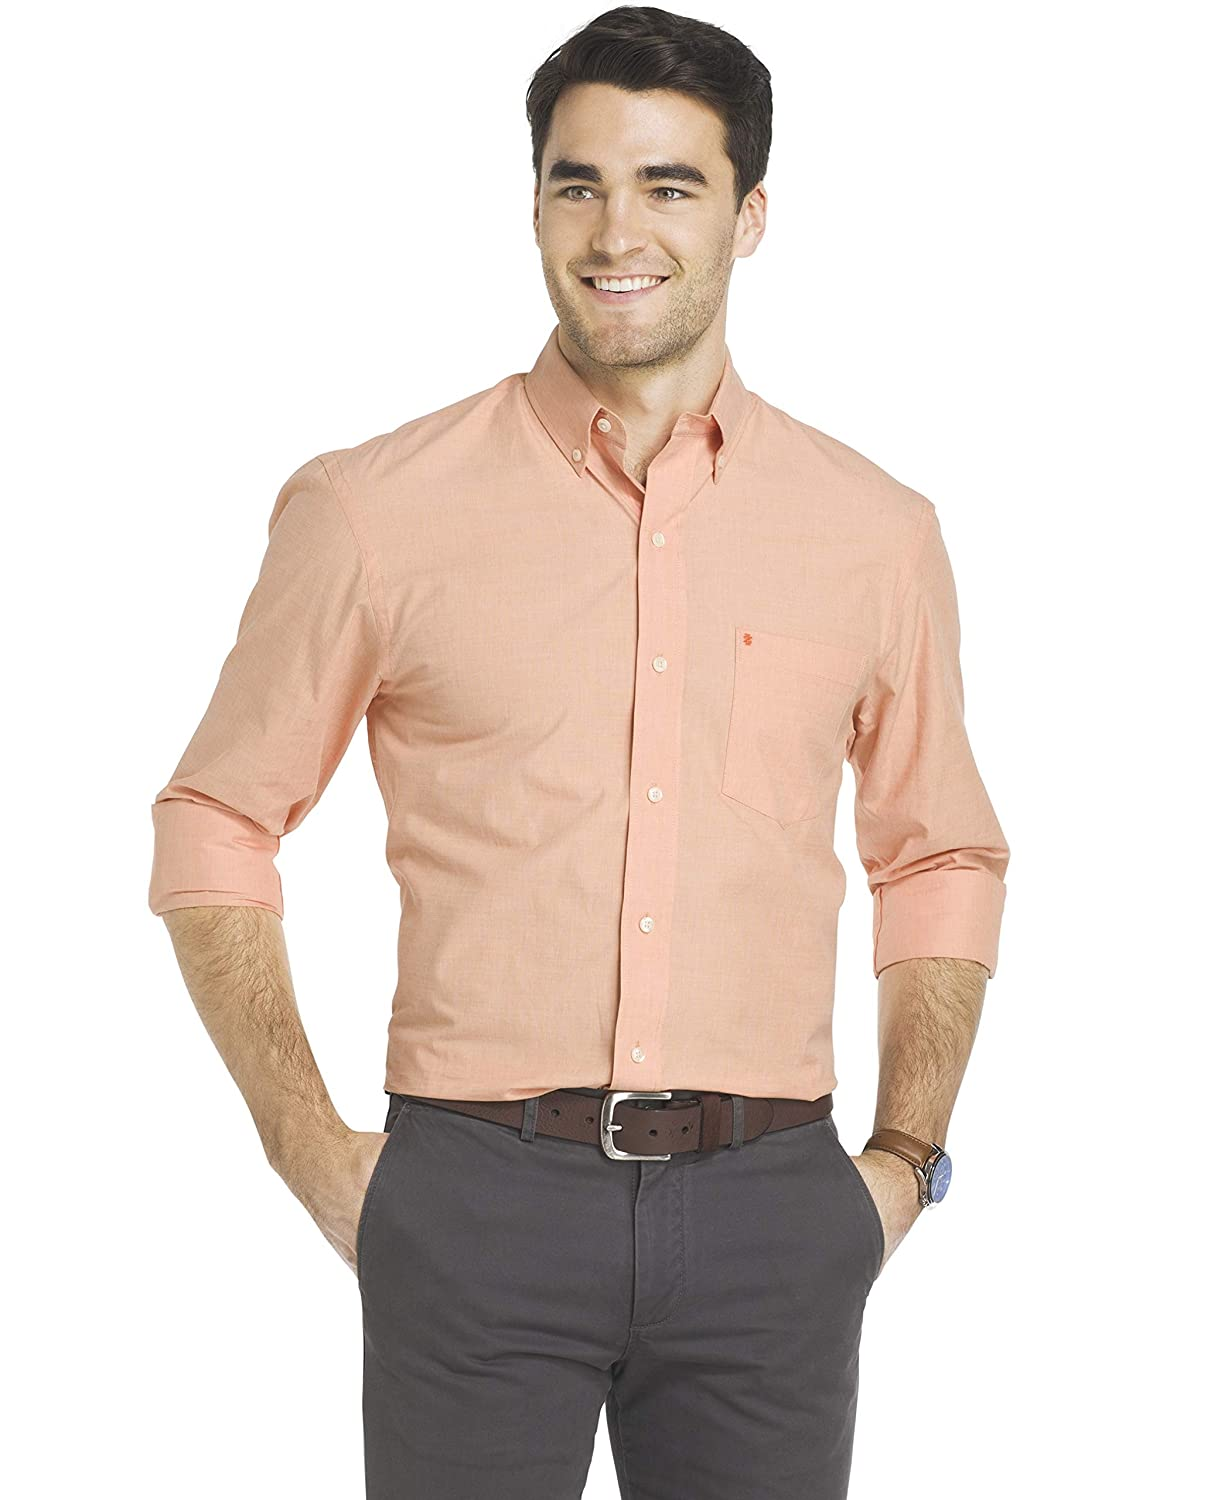 IZOD Mens Button Down Long Sleeve Stretch Performance Solid Shirt